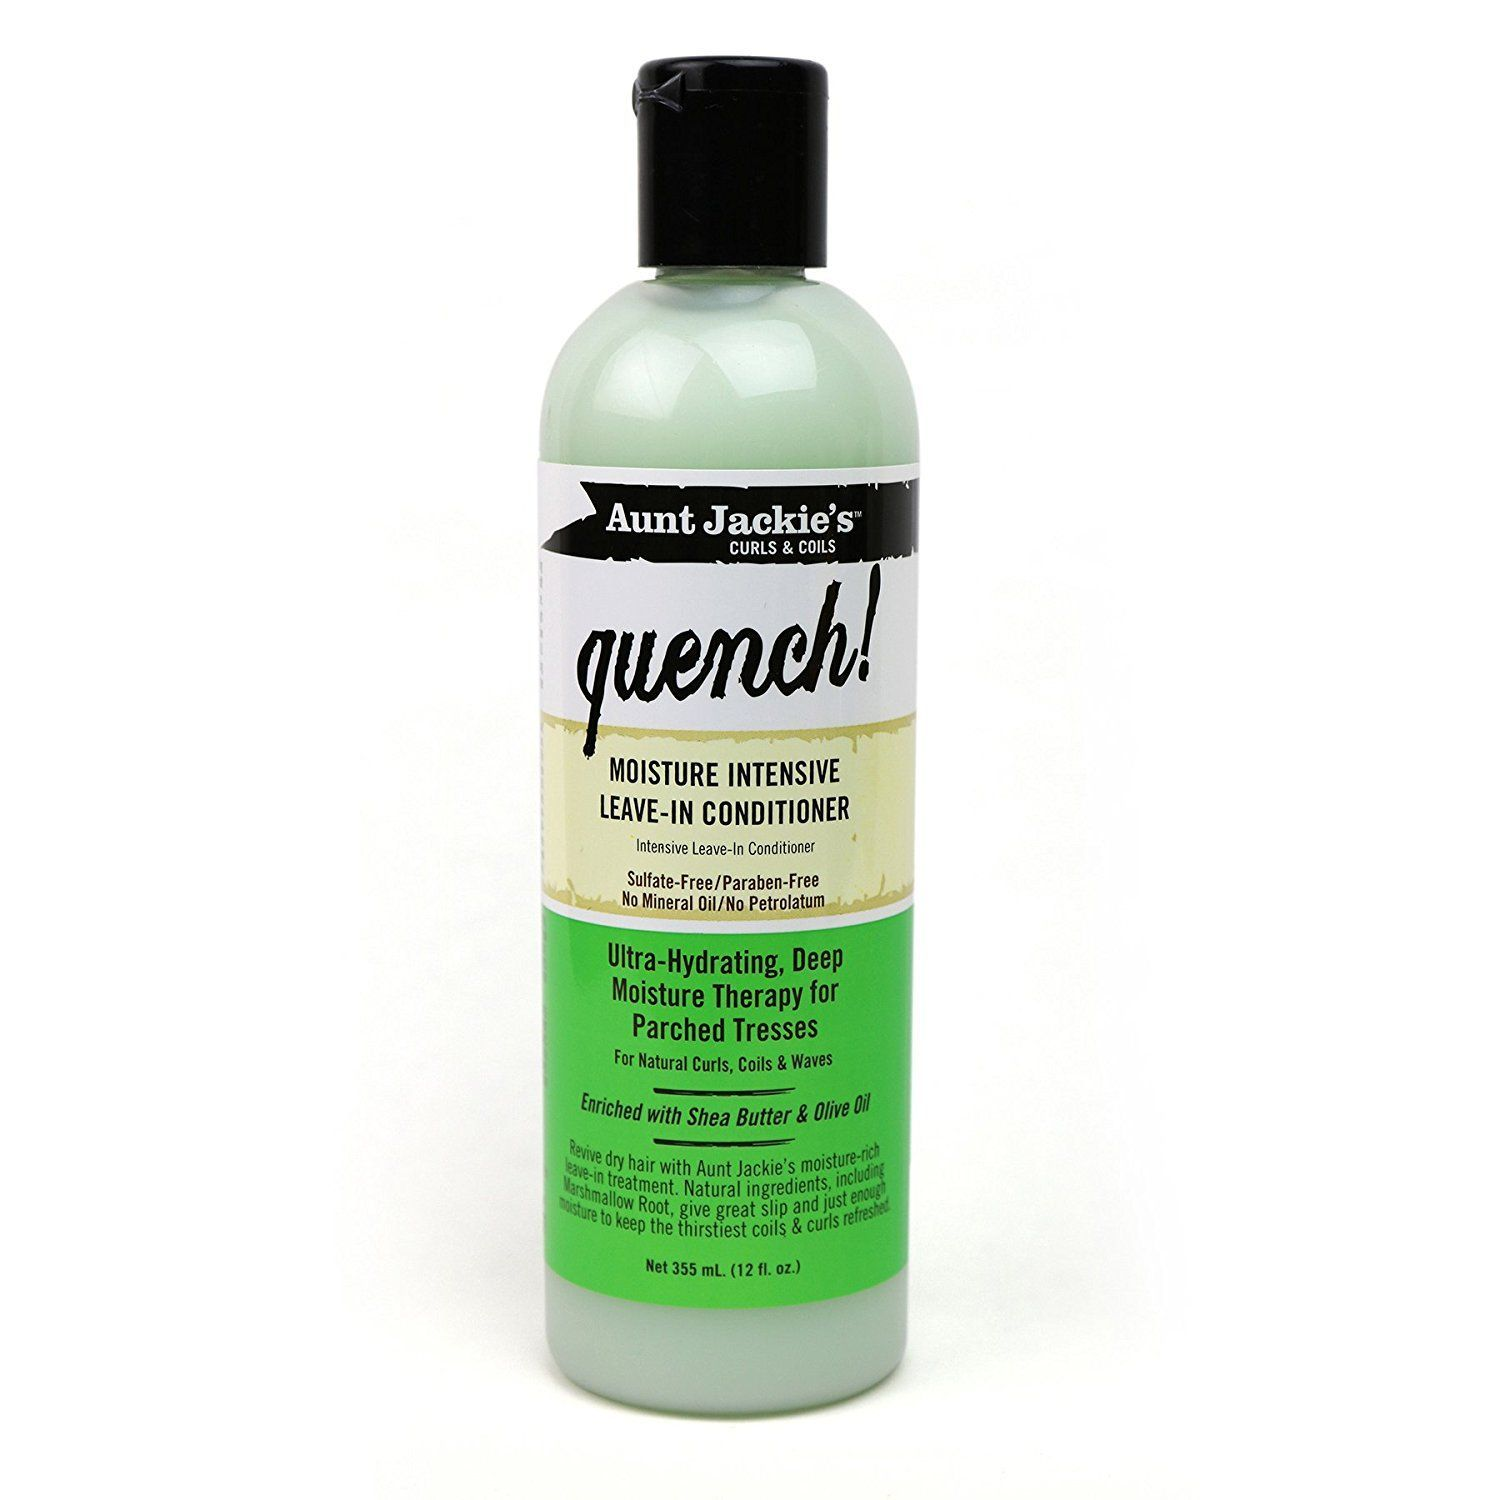 Aunt Jackie's Quench Moisture Intensive Leave-in Conditioner - 12oz